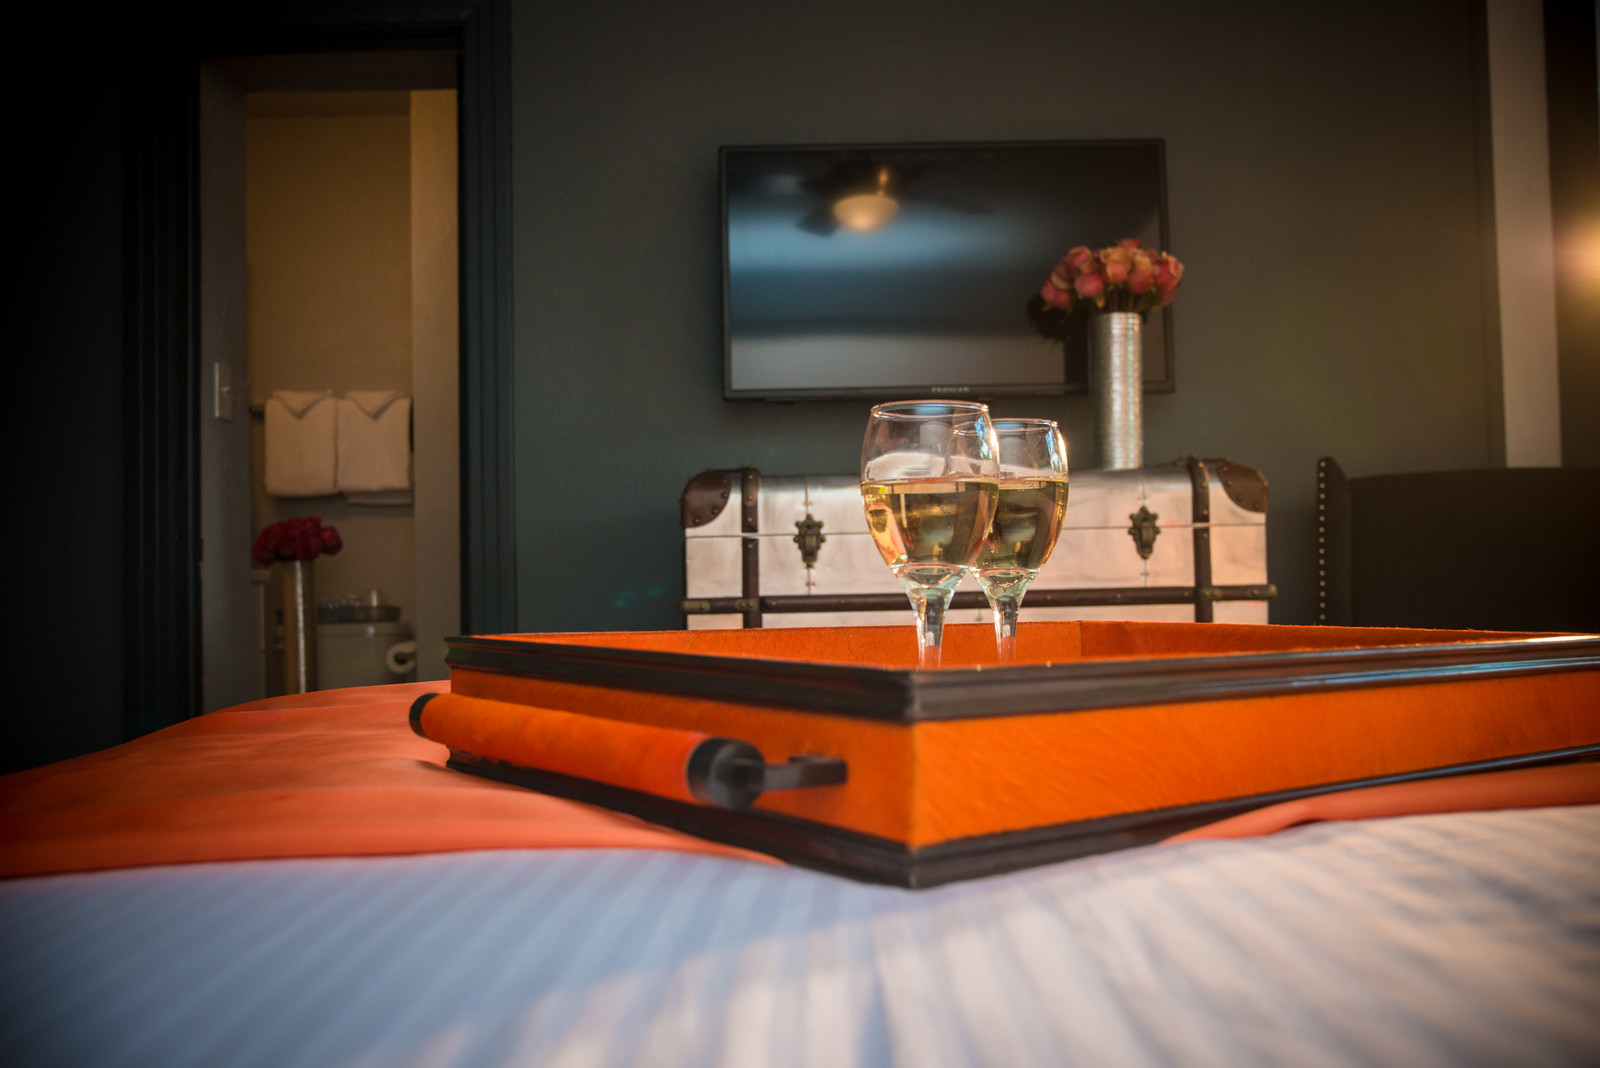 2 glasses of wine on a tray on top of bed in Queen Room.